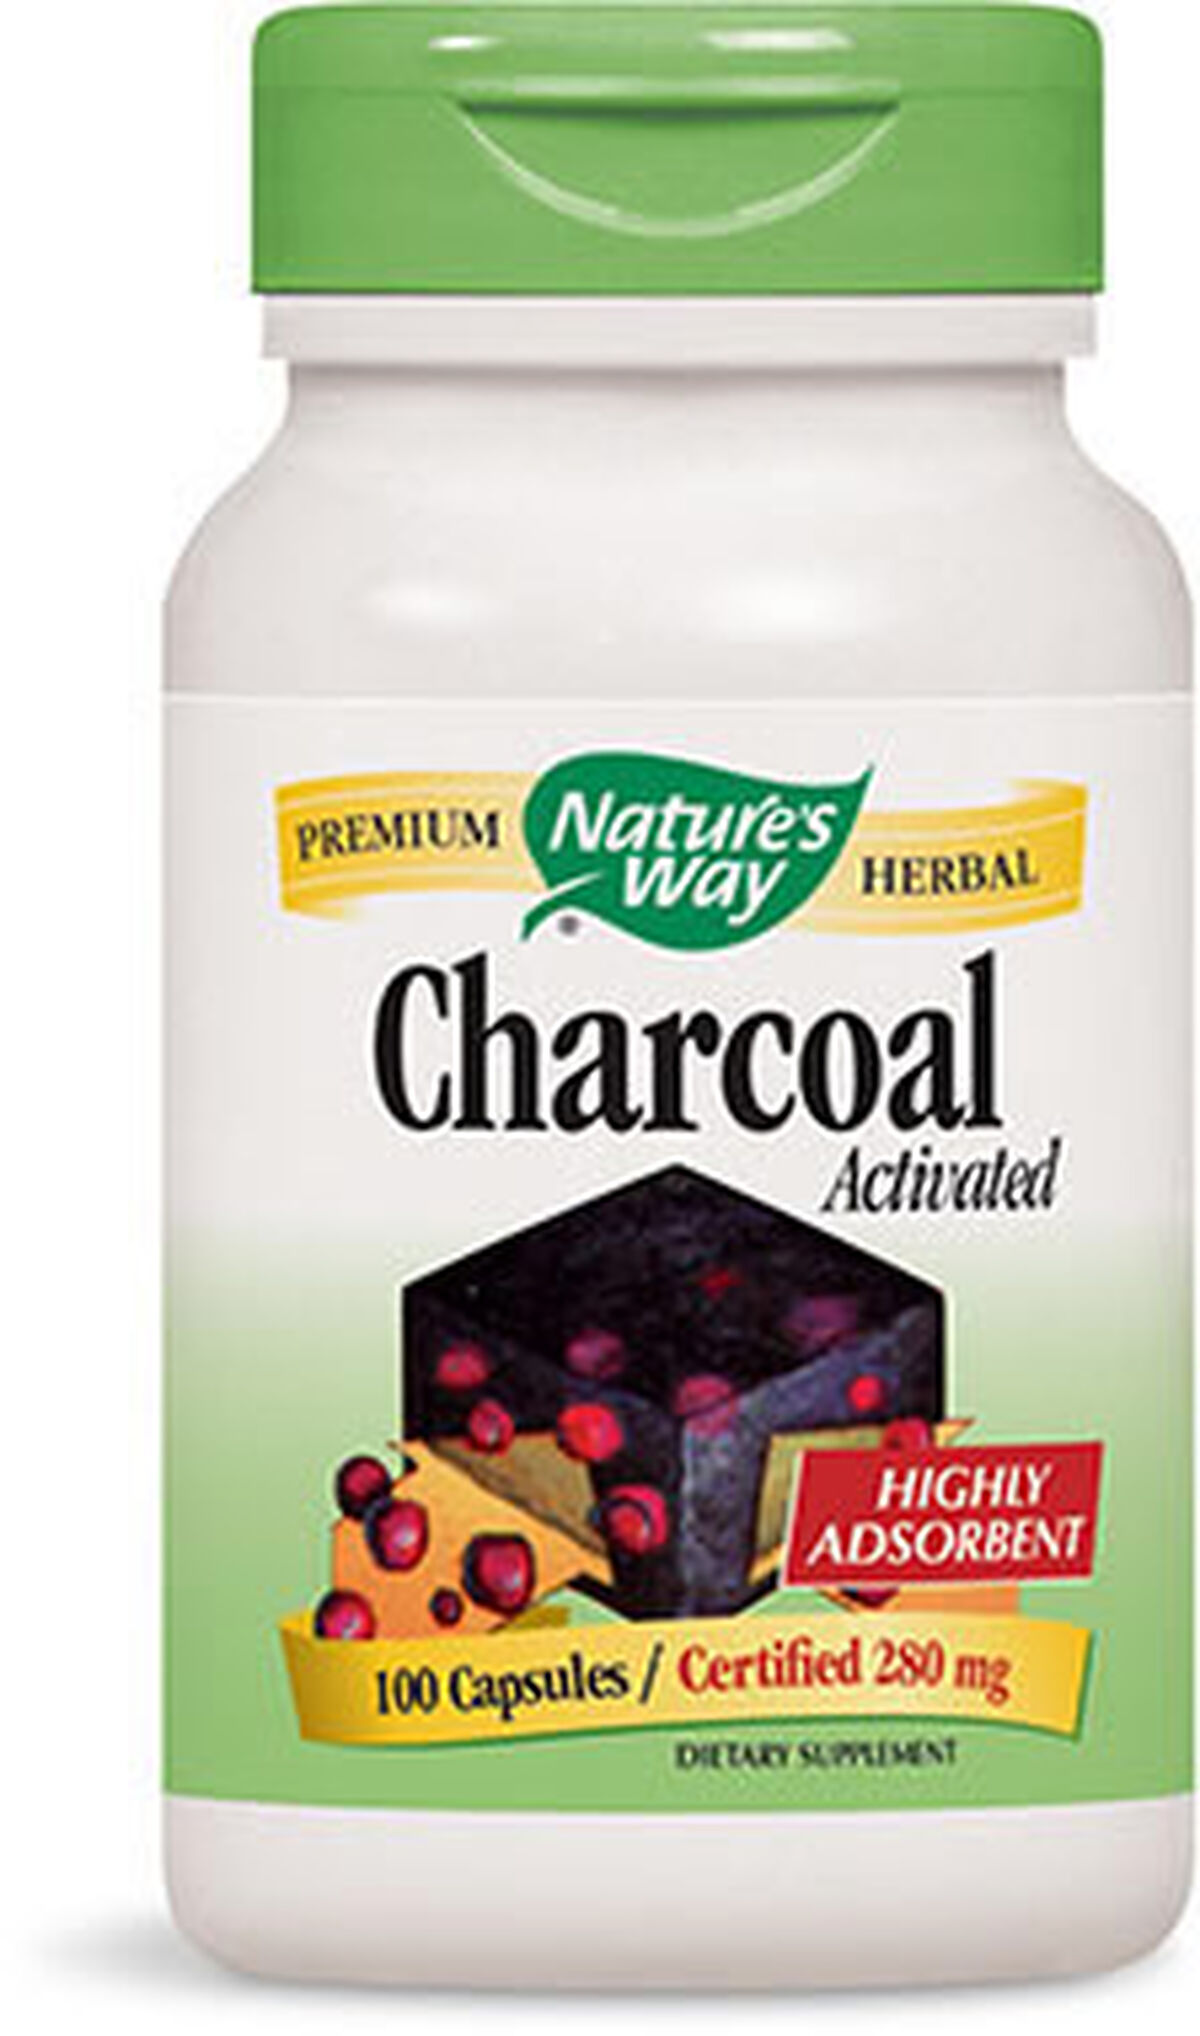 Nature's Way® Activated Charcoal 280 mg. | Vitamin World | Tuggl